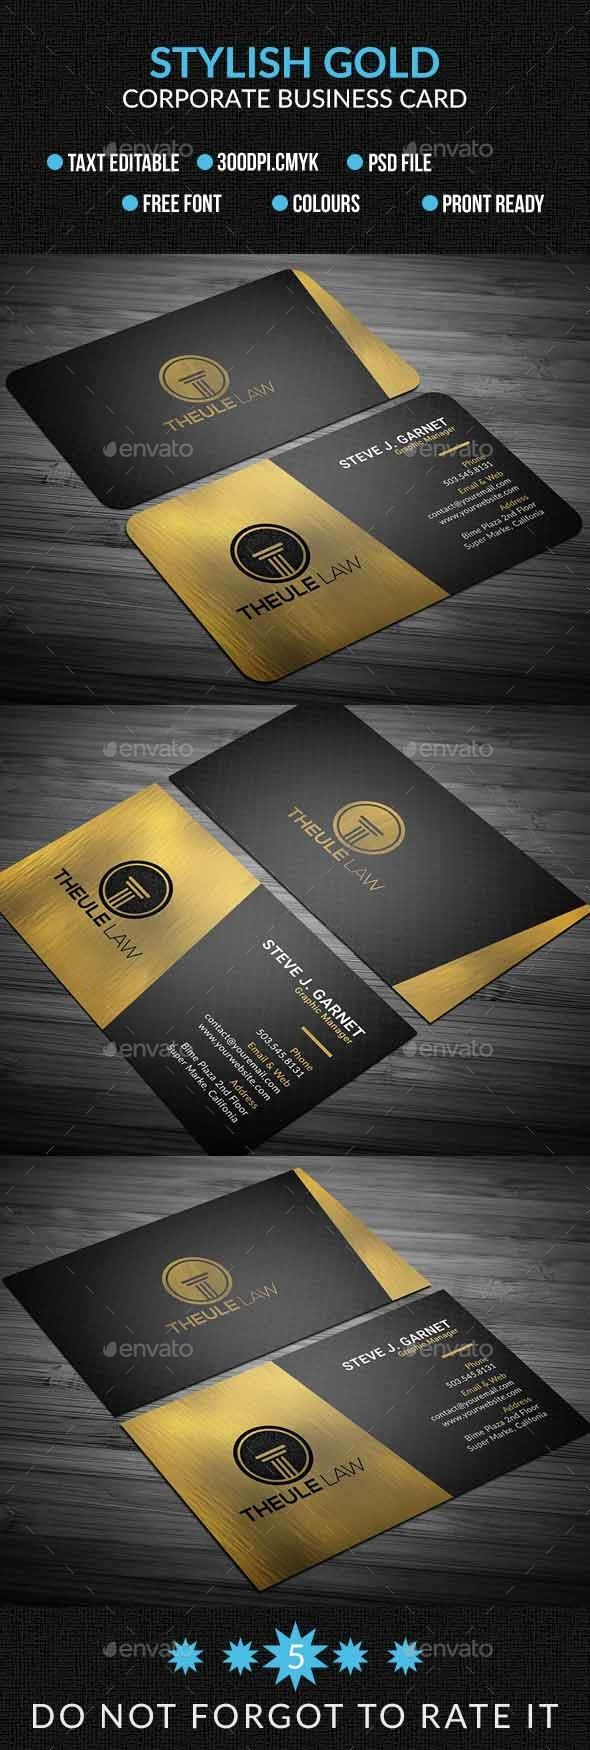 Strlish Gold Corporate Business Card Corporate Business Cards Download Here Https Graphicriver Net Item Strl Corporate Business Card Business Cards Cards